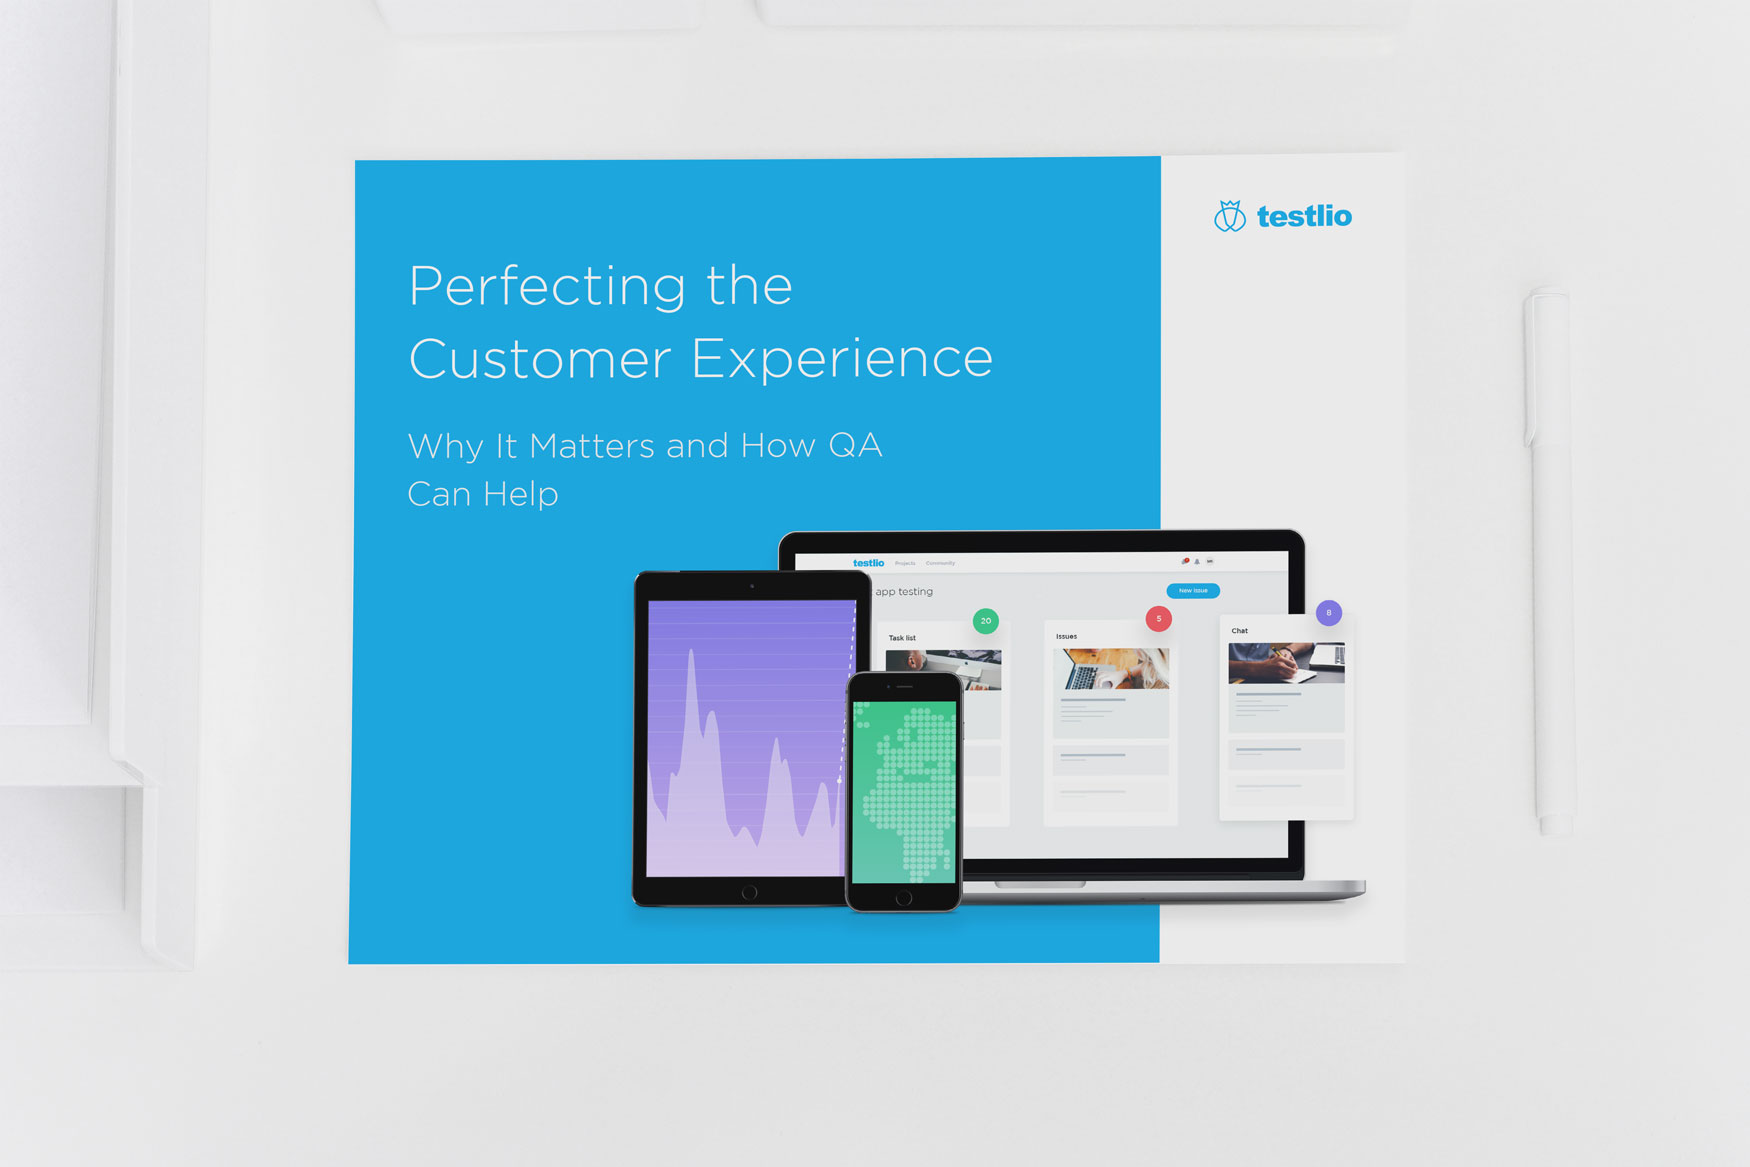 Dot Pixel - Testlio - Perfecting the Customer Experience eBook - Sales/Marketing Collateral Design